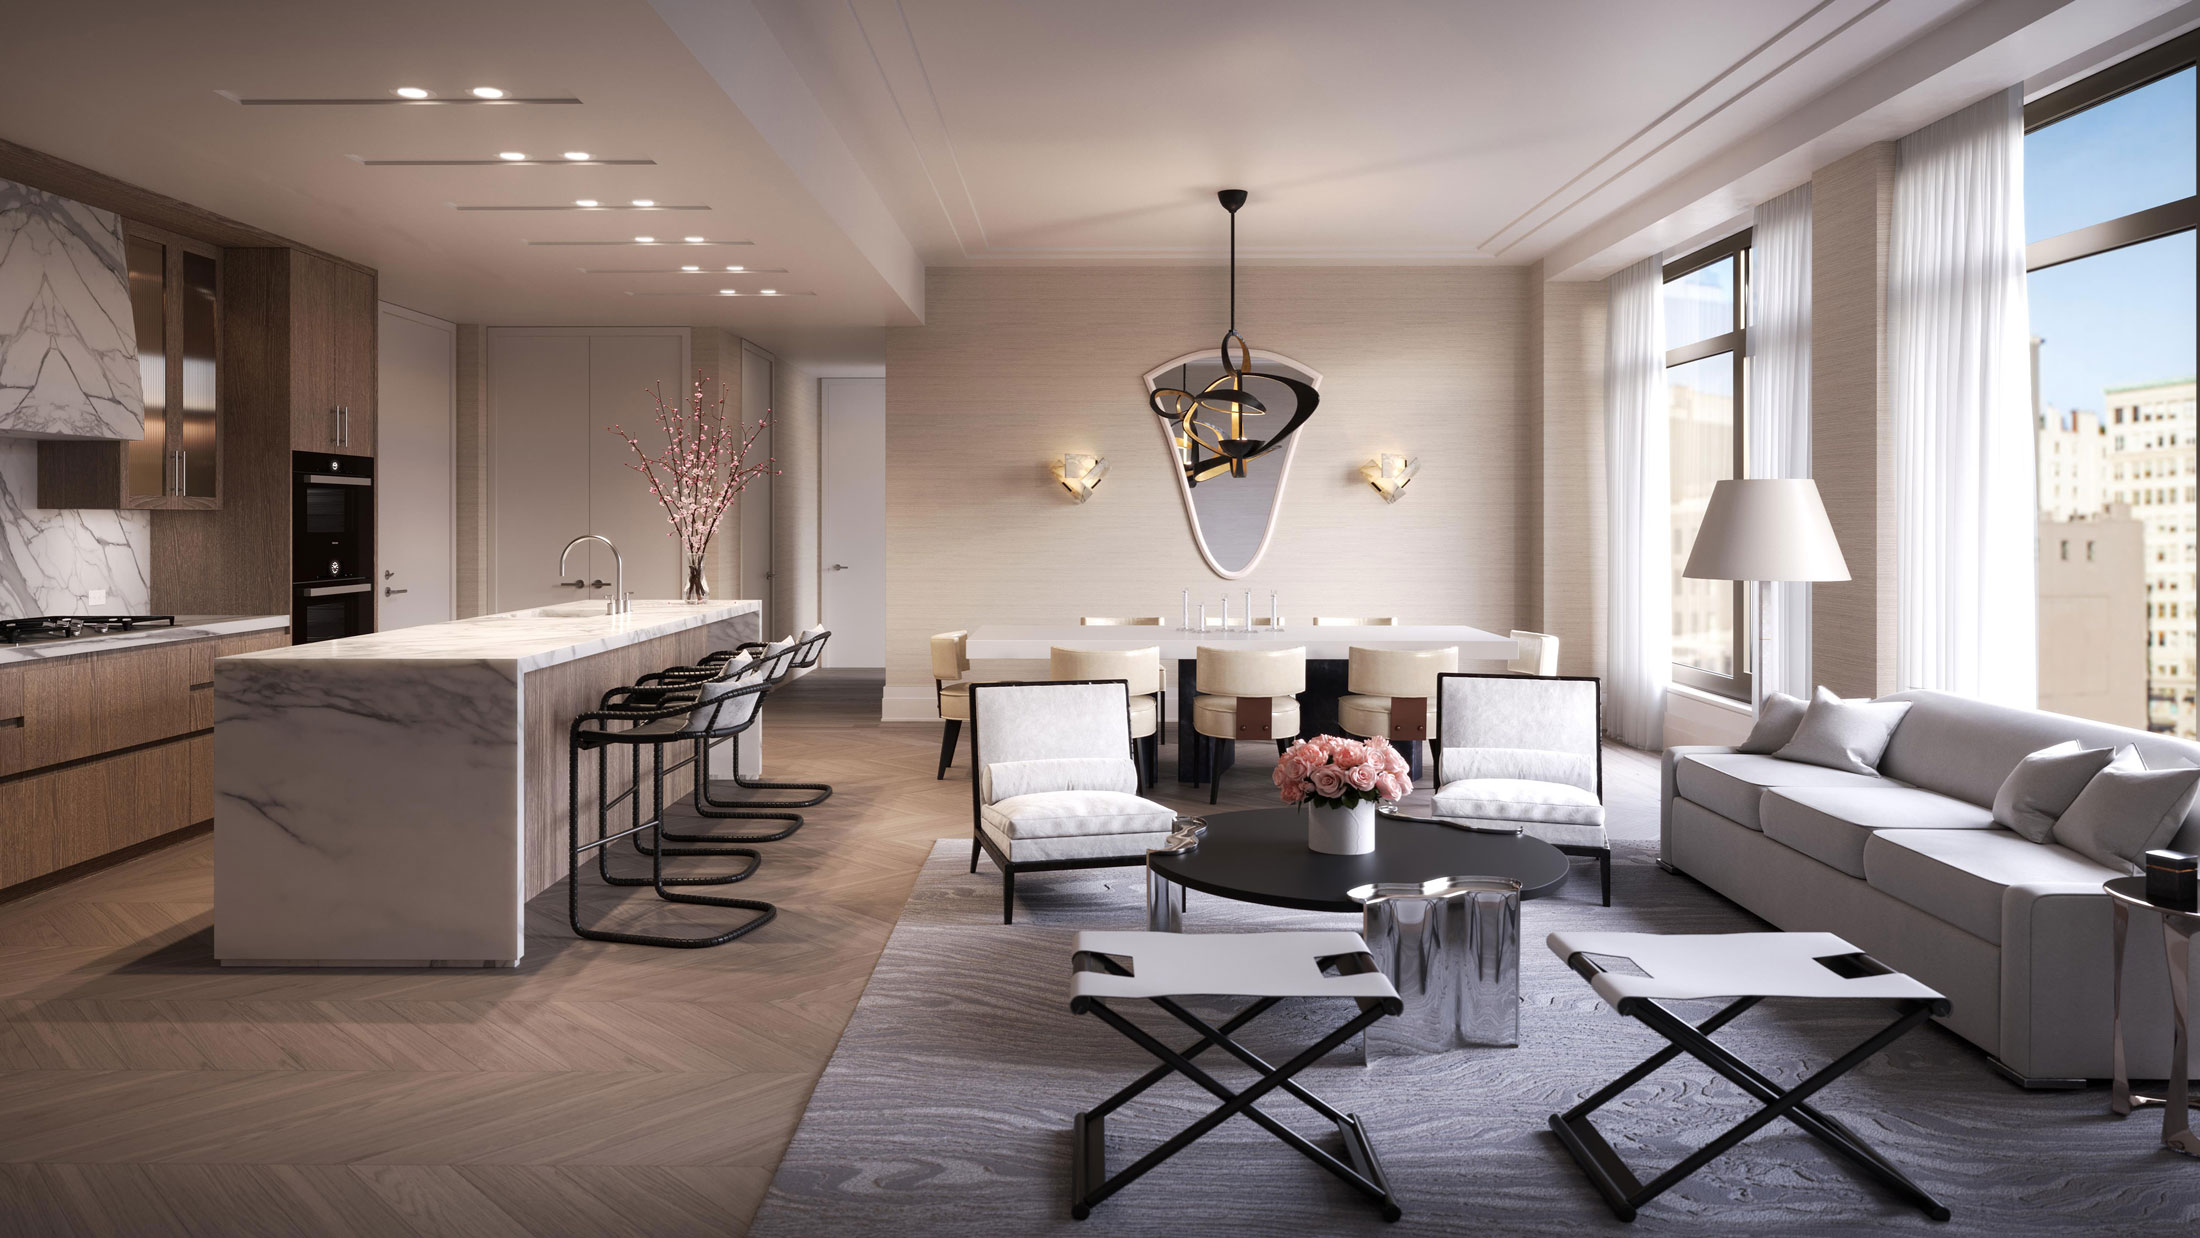 Architectural Rendering of the living room of the 40 Bleecker project located in Noho, New York City